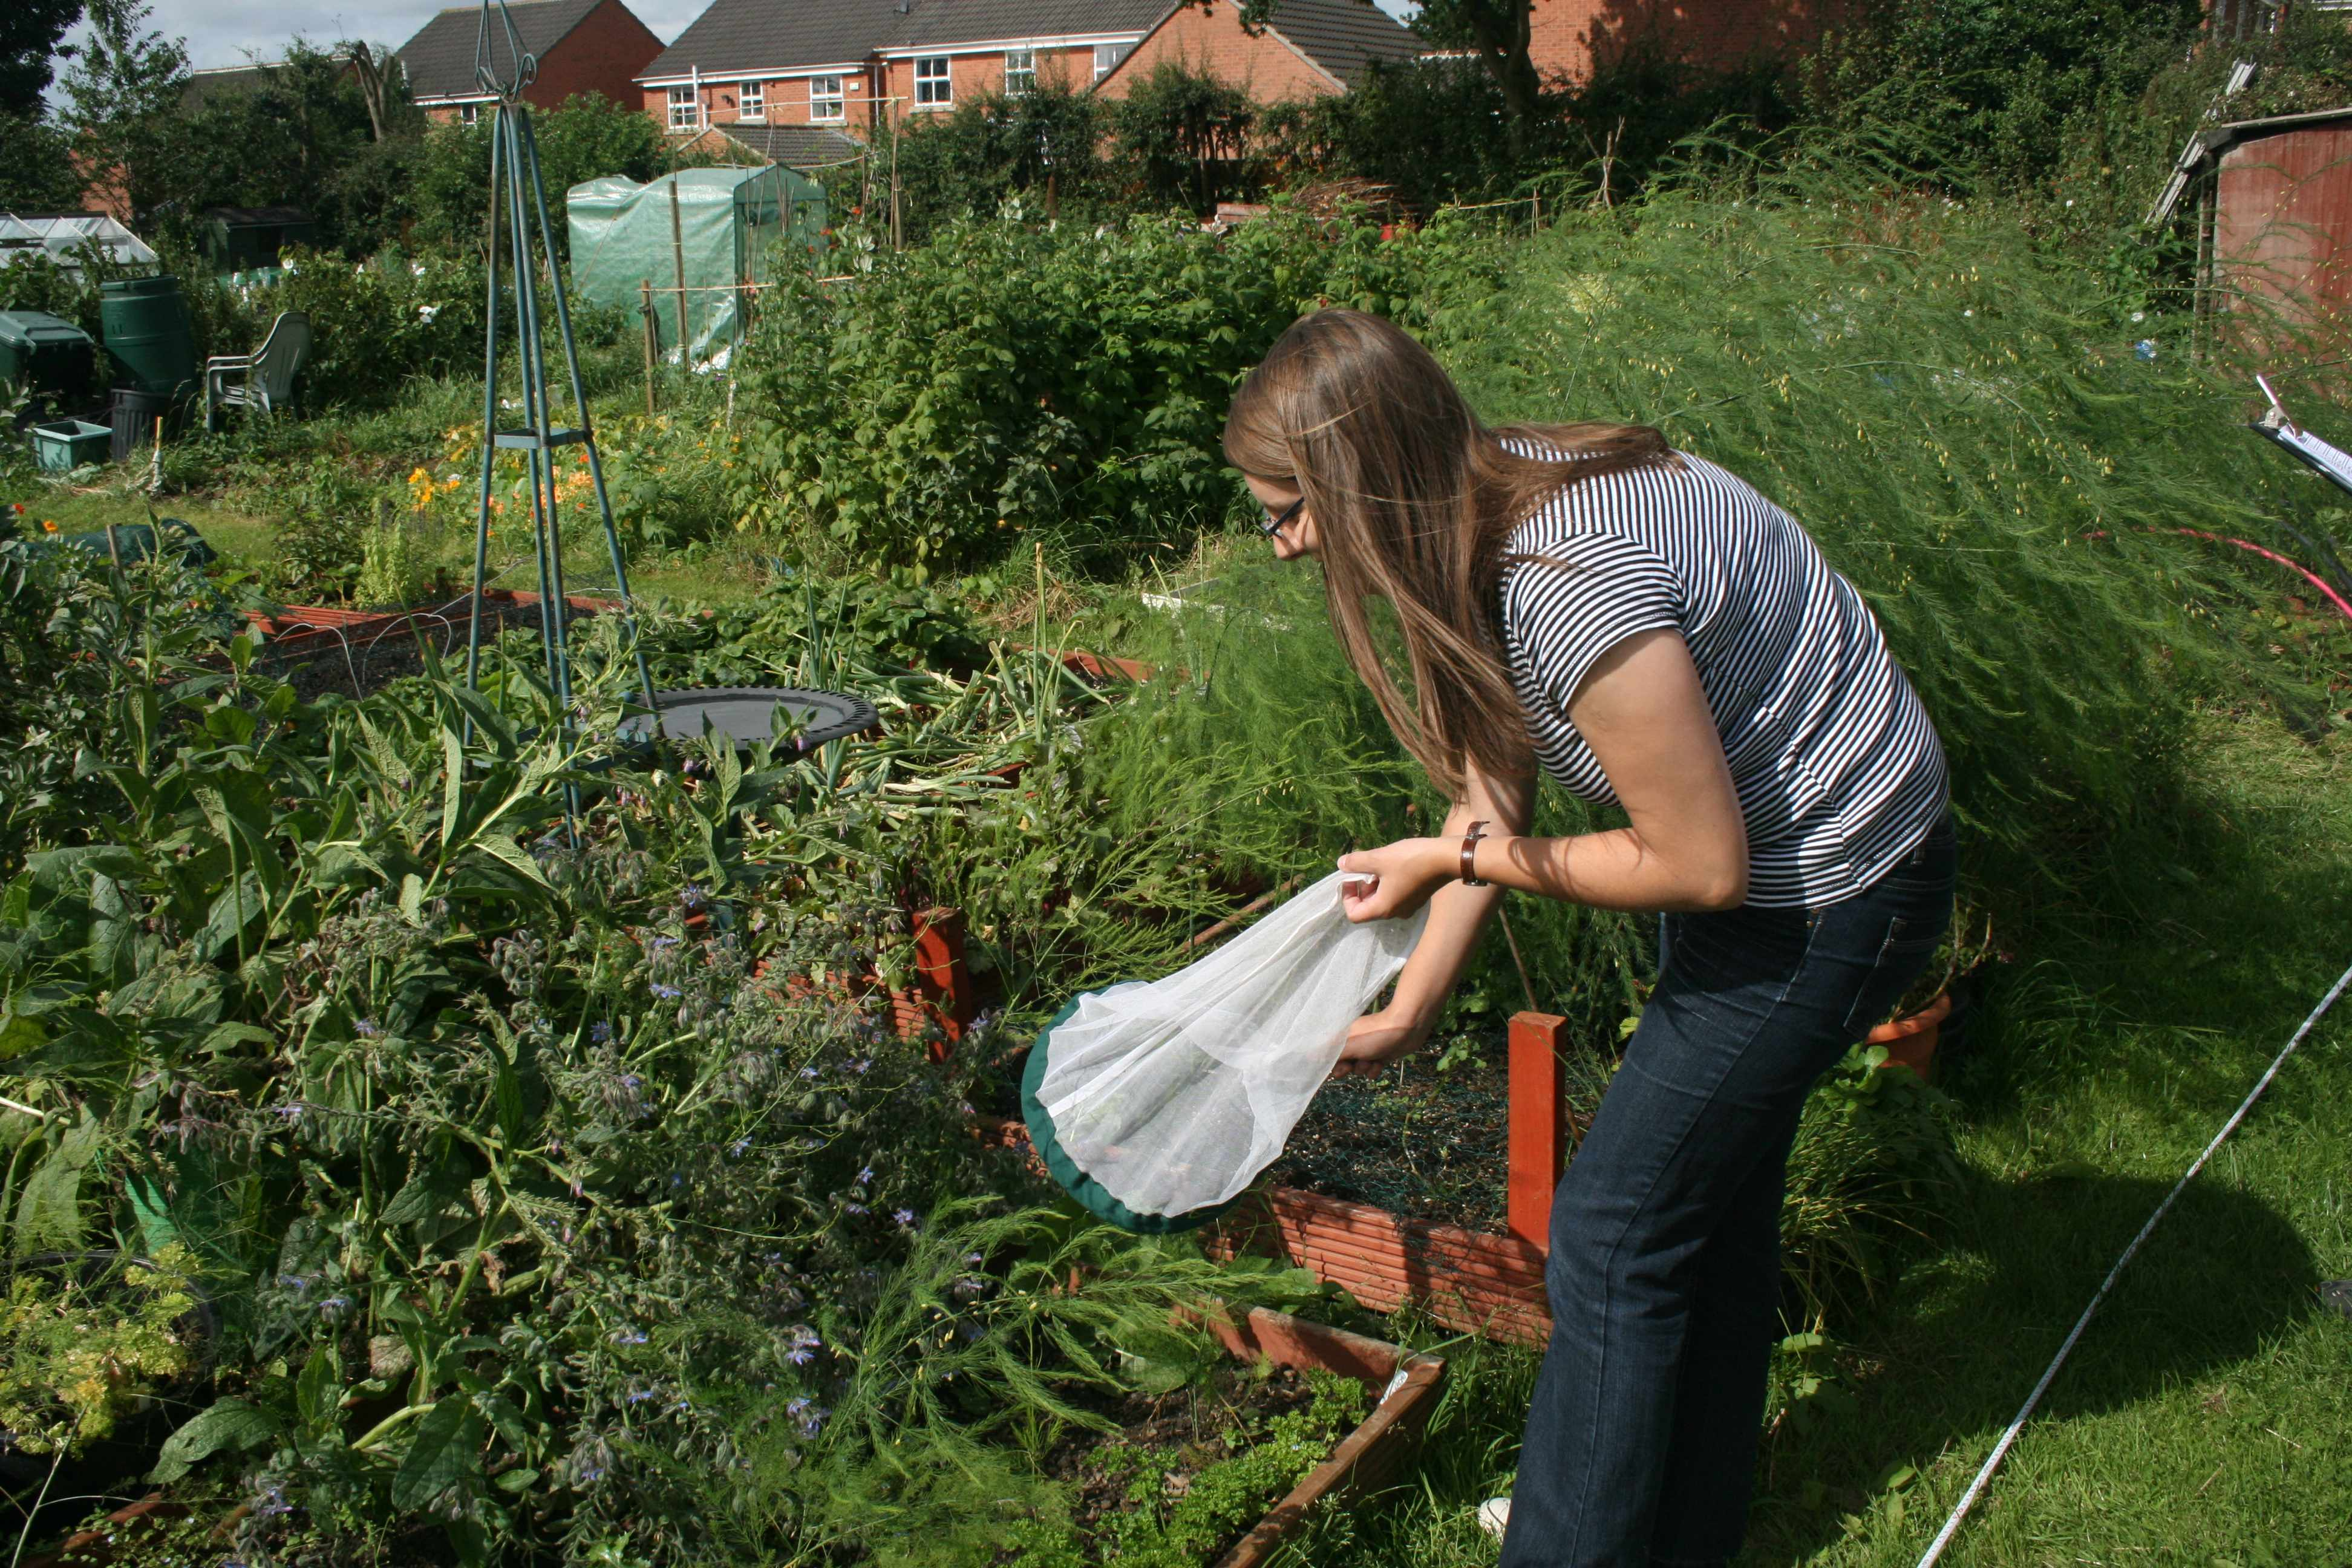 Sampling an allotment for pollinators in Leeds (Photo: K. Baldock)